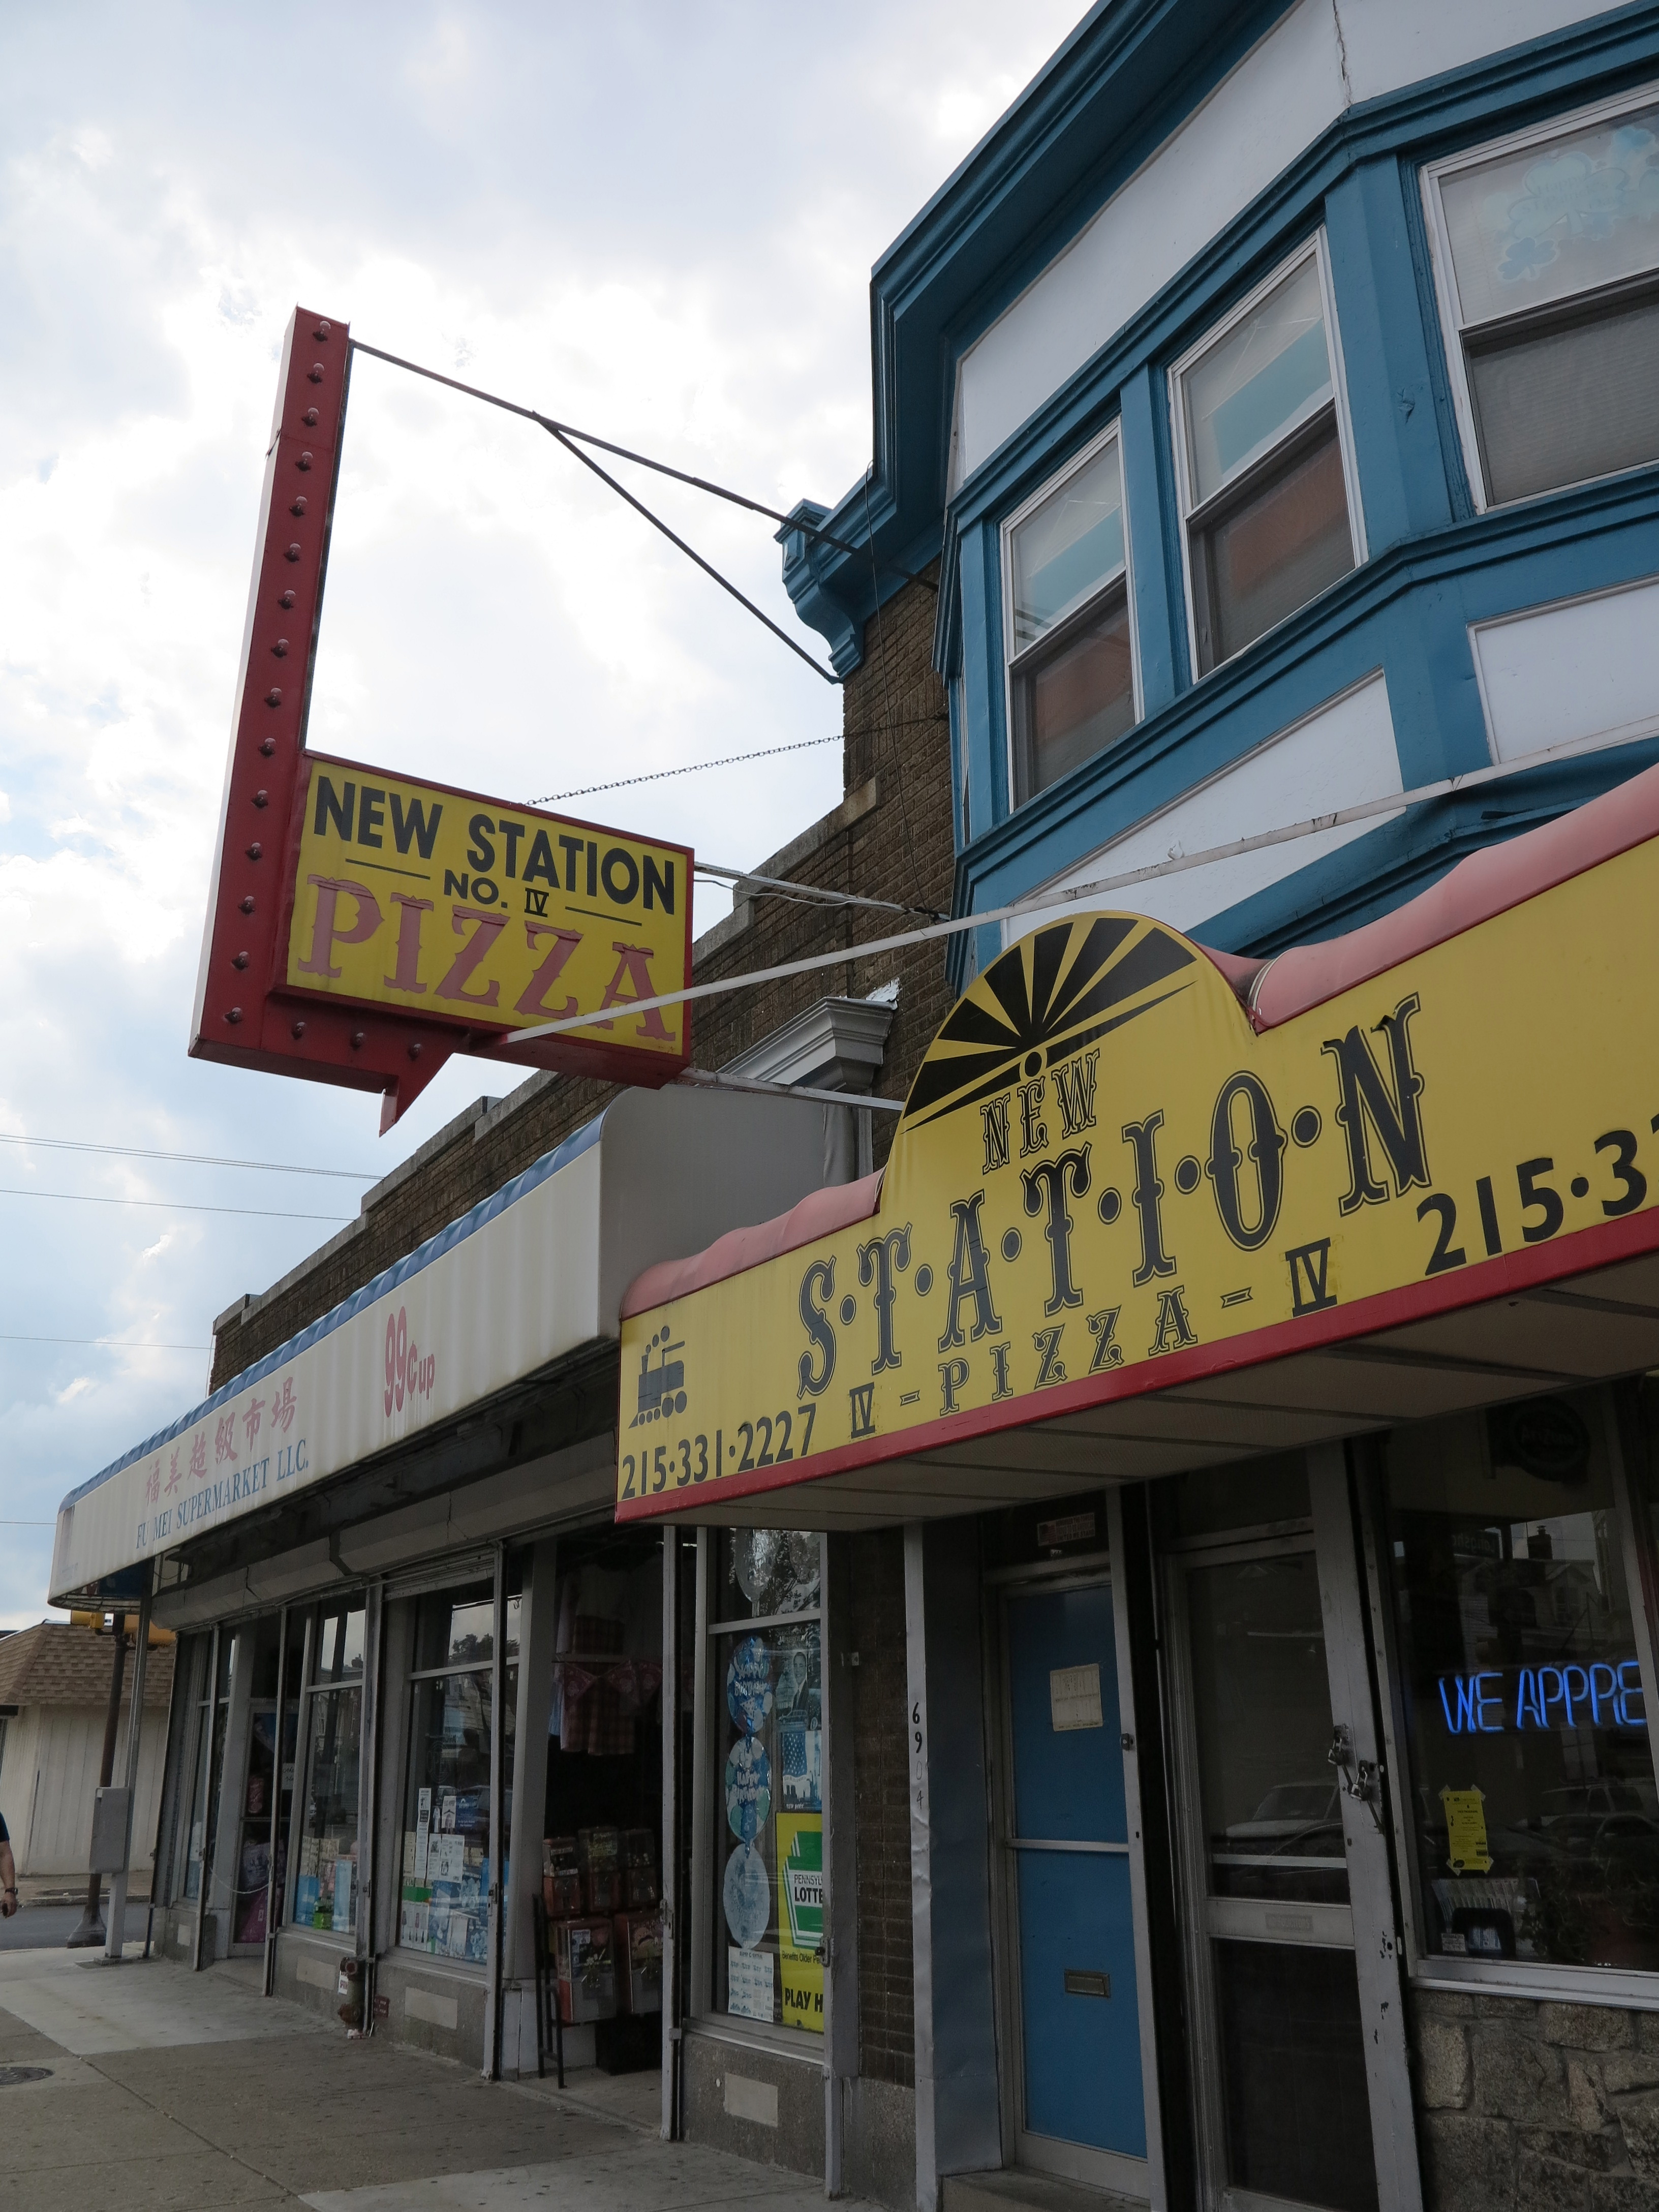 New Station Pizza (6904 Torresdale) and its next door neighbor Fu Mei Mart (6900 Torresdale) will both get improved signage and awnings as part of the facade program.